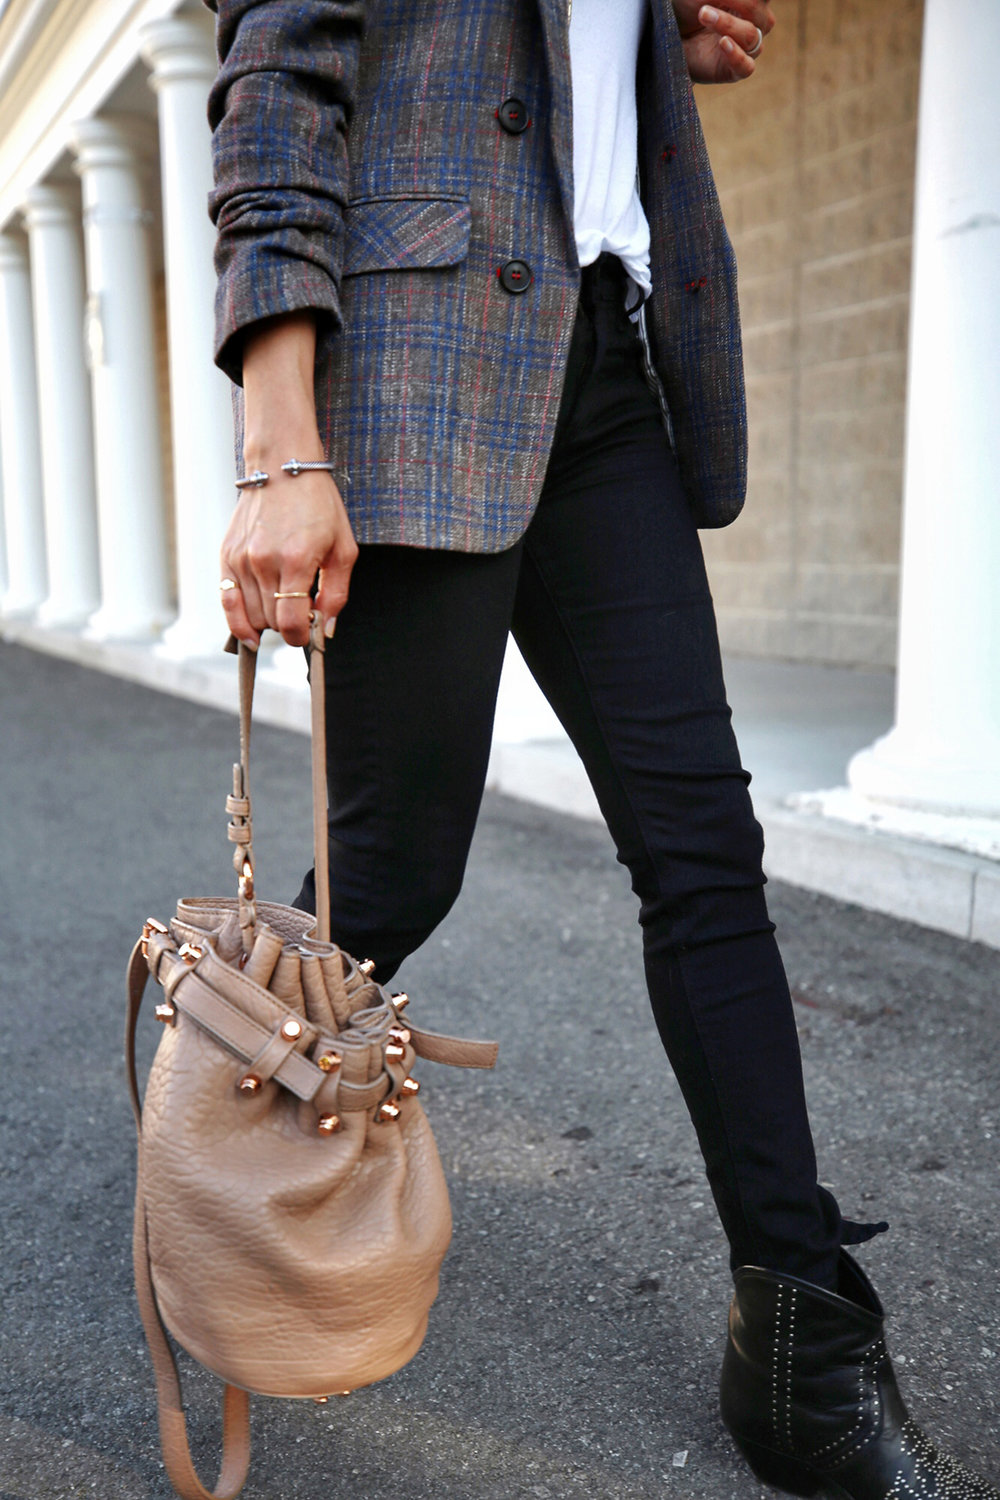 Veronica Beard plaid blazer, Rag & Bone black skinny jeans, Isabel Marant black studded Dollan cowboy boots, Alexander Wang tanned Diego bag with rosegold hardwaare, street style, woahstyle.com by nathalie martin  10.jpg